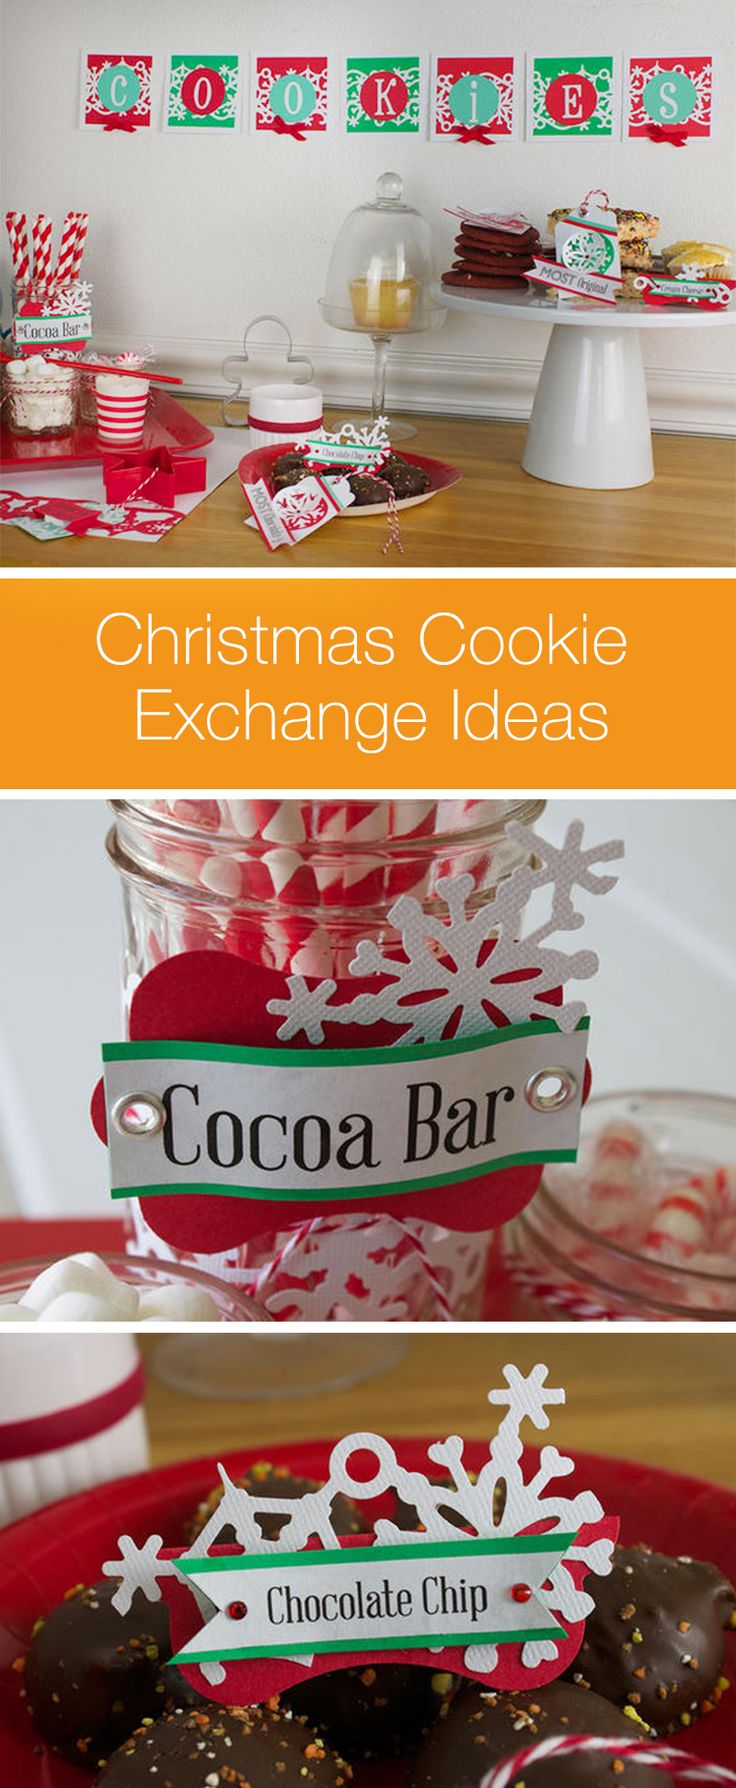 Host a holiday cookie party this year with some delicious decorations! Our DIY Christmas décor adds just the right amount of Christmas cheer to this sweet idea. Create name tags, awards and more with just a few craft tools and materials. Click in for instructions.